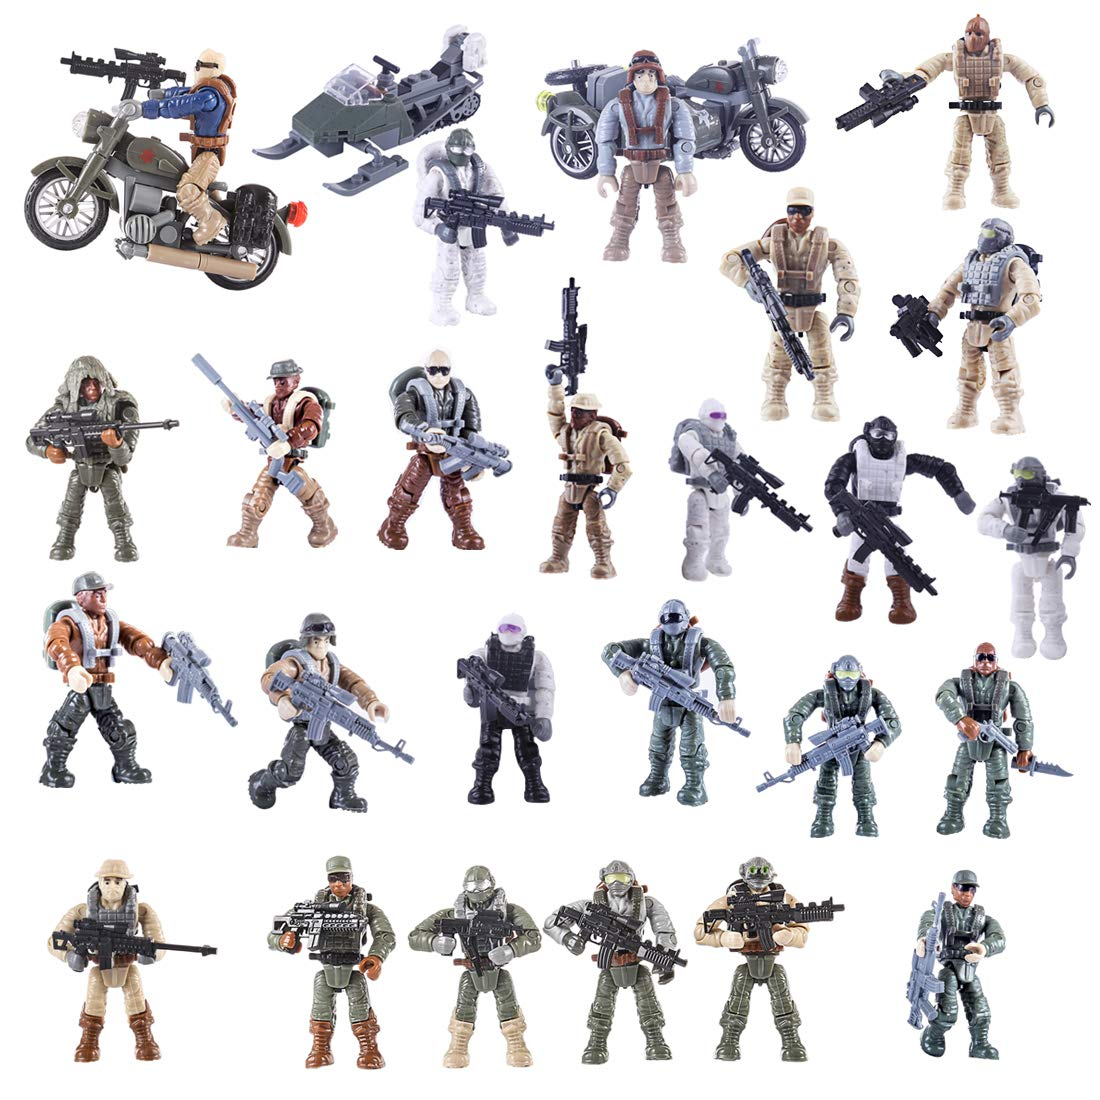 DUS 25er Mini Figuren mit 3er Autos Set SWAT Team Soldaten Minifiguren Armee Set Bausteine für Kinder